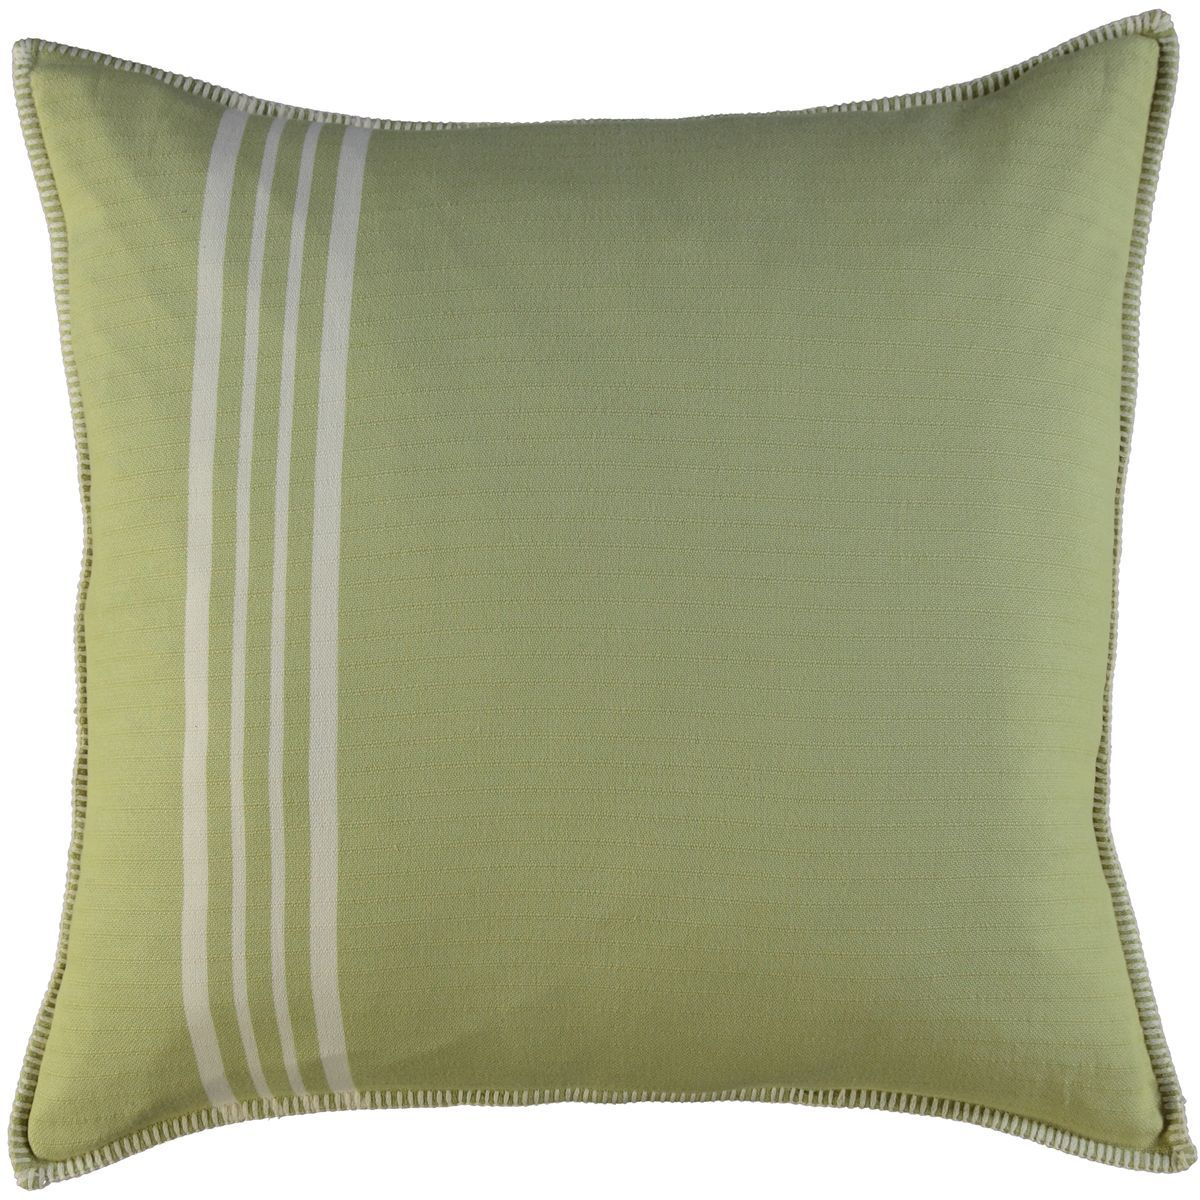 Cushion Cover Sultan - Green / 65x65